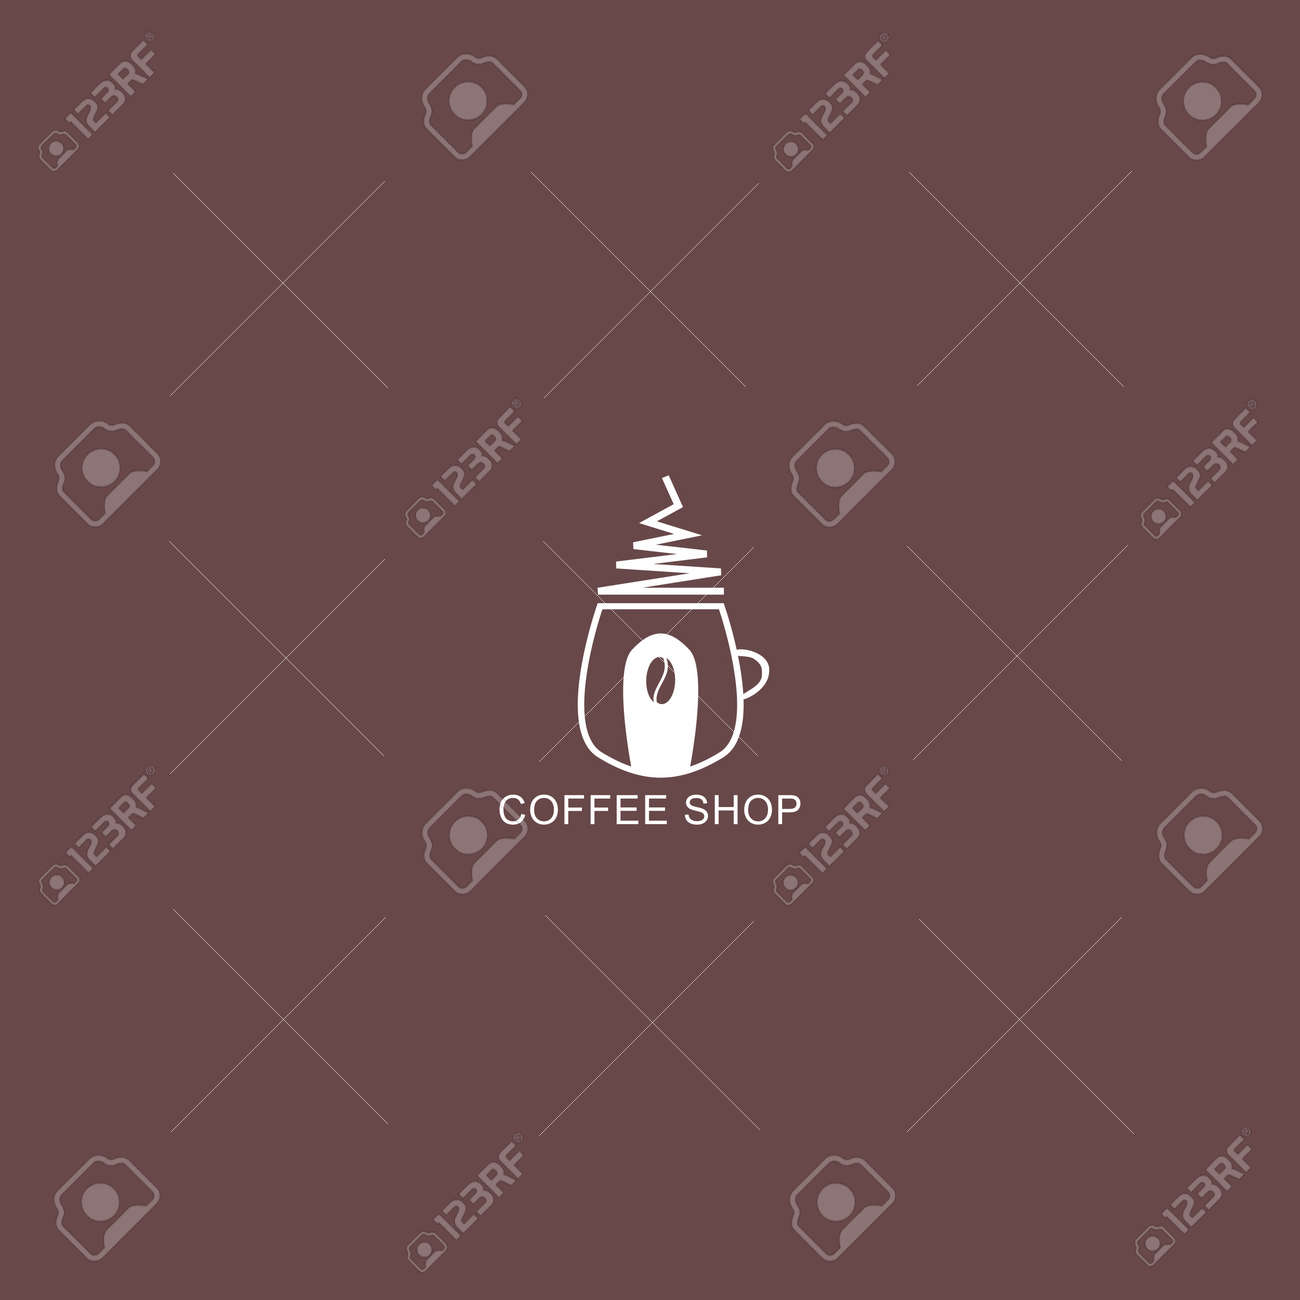 Coffee Shop Logo Simple Natural Home Logo Design Cafe Or Restaurant Royalty Free Cliparts Vectors And Stock Illustration Image 153251117